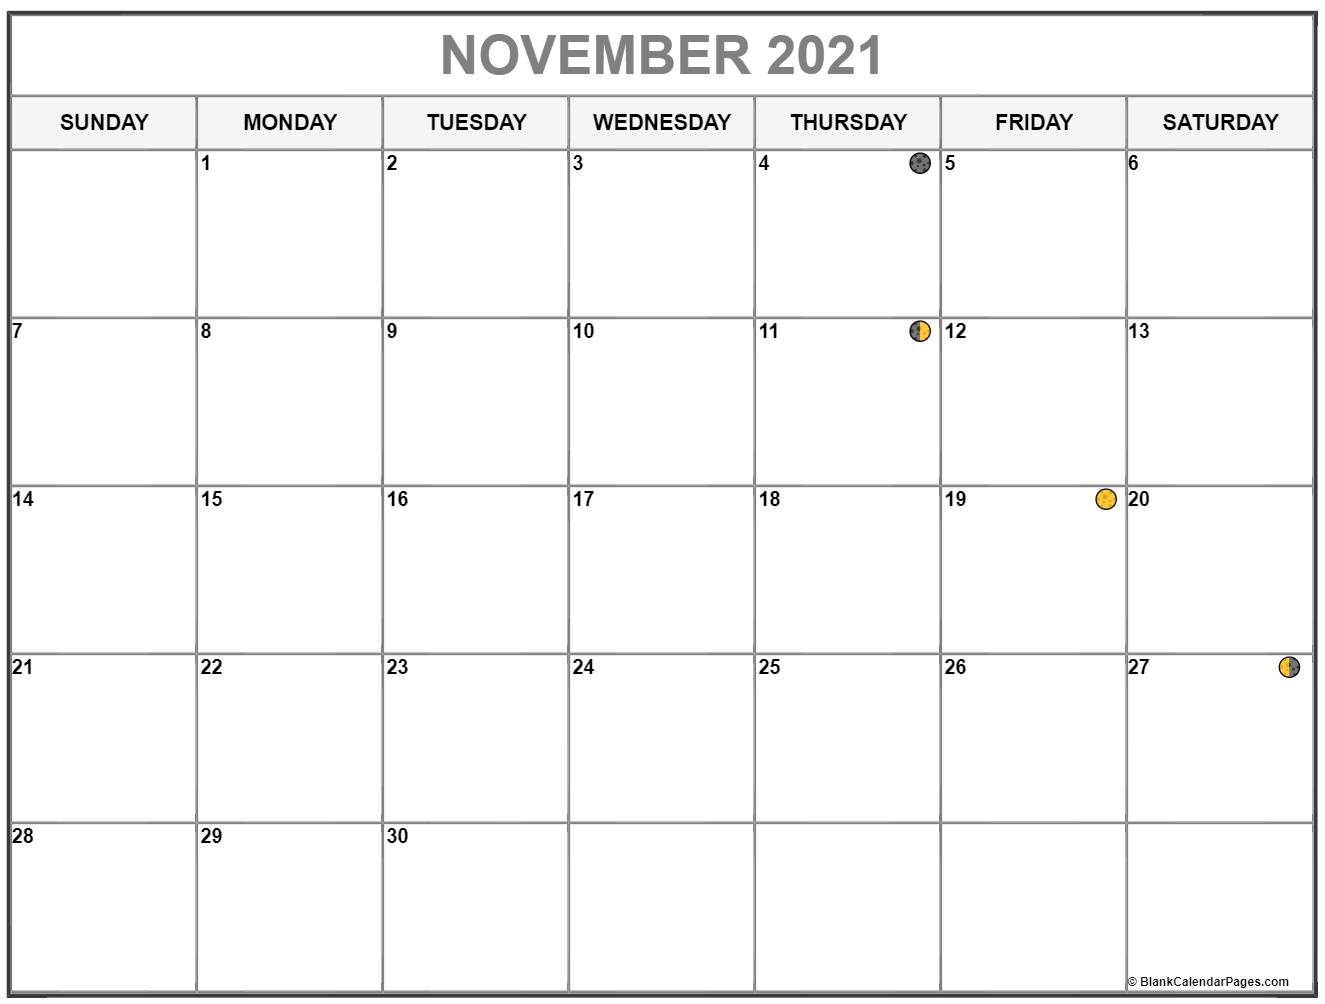 November 2019 lunar calendar. Moon phases with USA holidays